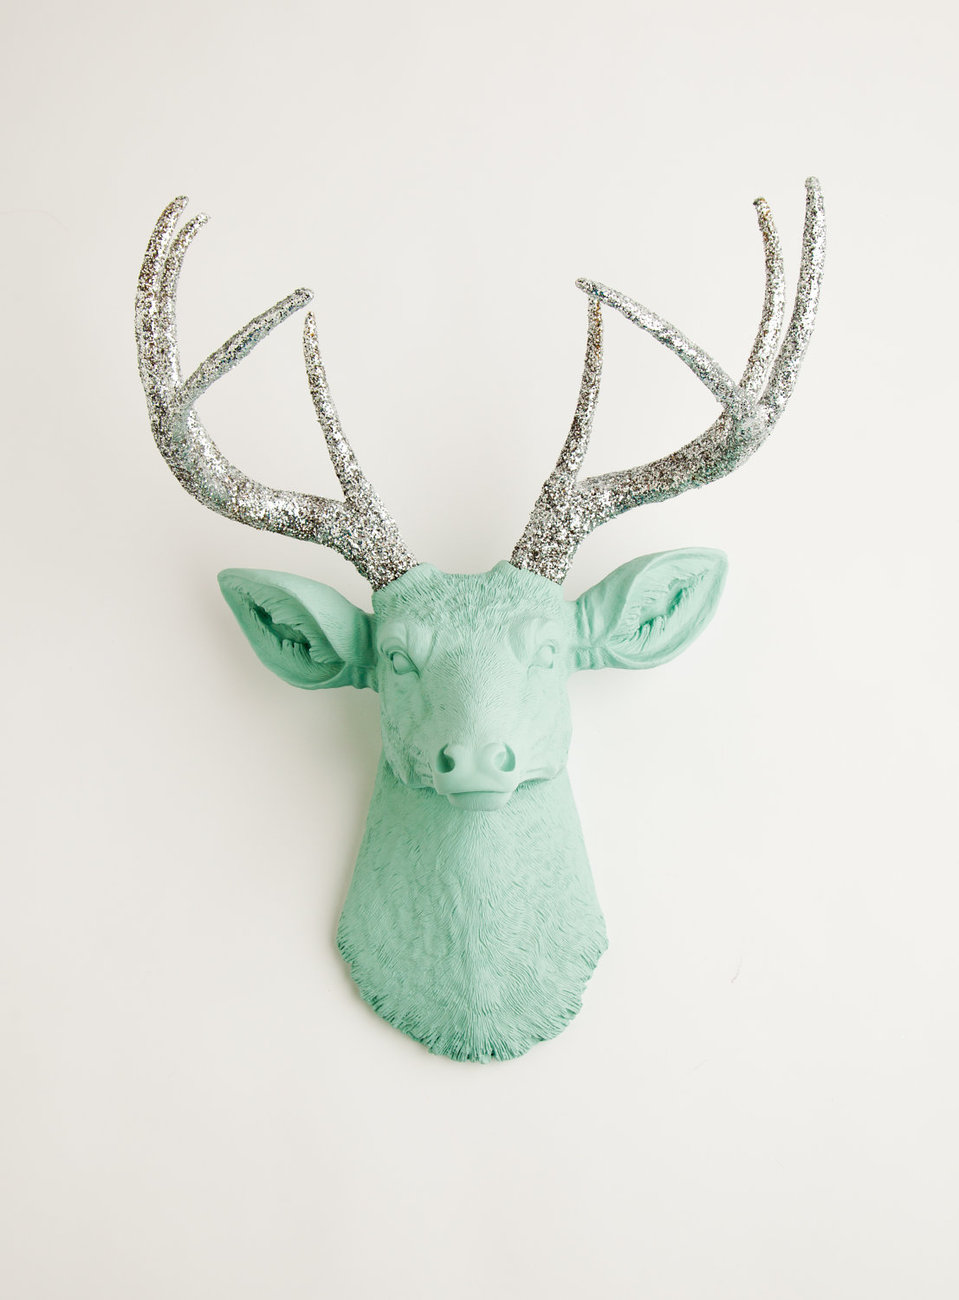 The Agnes Seafoam Green W Silver Glitter Antlers Resin